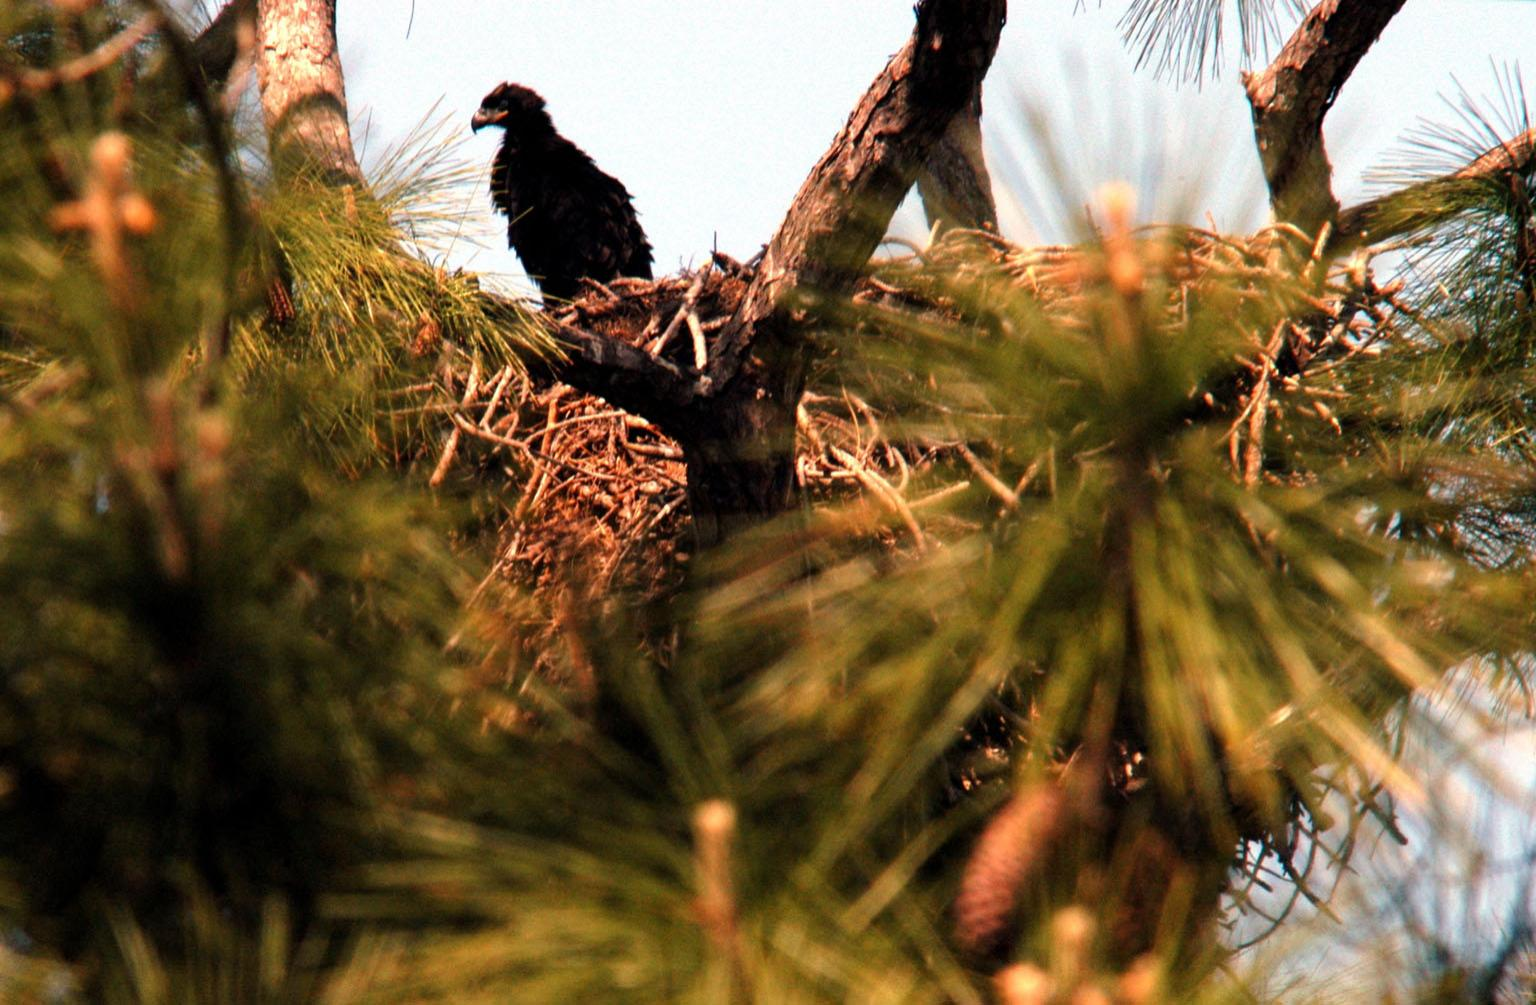 KENNEDY SPACE CENTER, FLA. -- On Kennedy Parkway, which runs through KSC, a young bald eagle is spotted perched on the side of its nest. The nest is one of 12 active nests throughout the Merritt Island National Wildlife Refuge, which shares a boundary with KSC. Young birds lack the typical white head, which they gain after several years. Nests are masses of sticks usually in the top of a tall tree. Their habitat is near lakes, rivers, marshes and seacoasts.